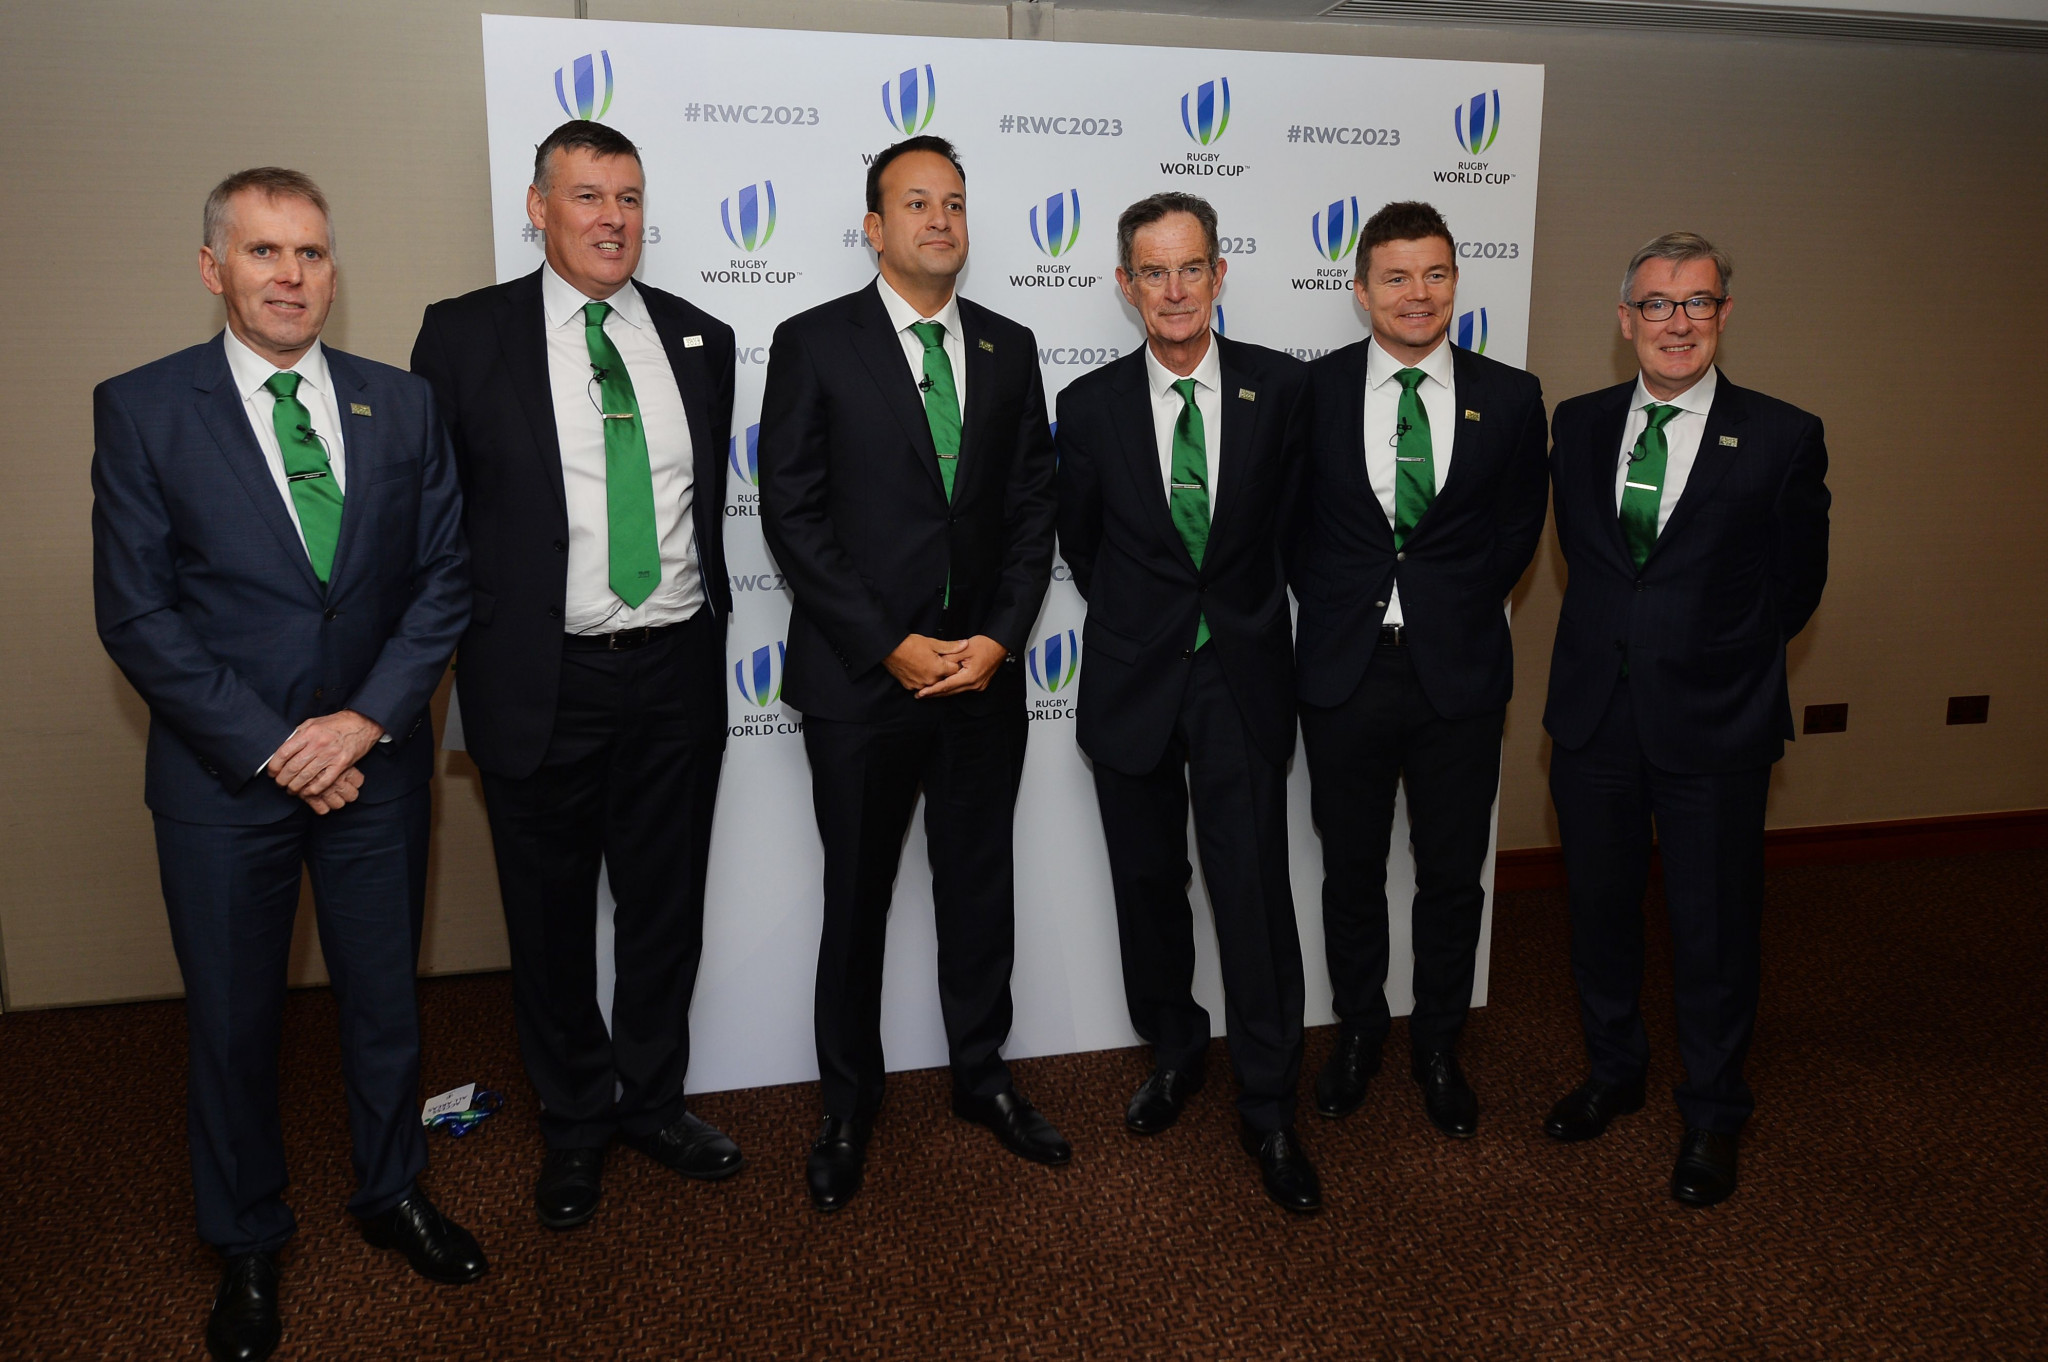 A high-powered delegation from Ireland, including the country's Prime Minister Leo Varadkar, third left, made a strong case to host the 2023 Rugby World Cup ©Getty Images